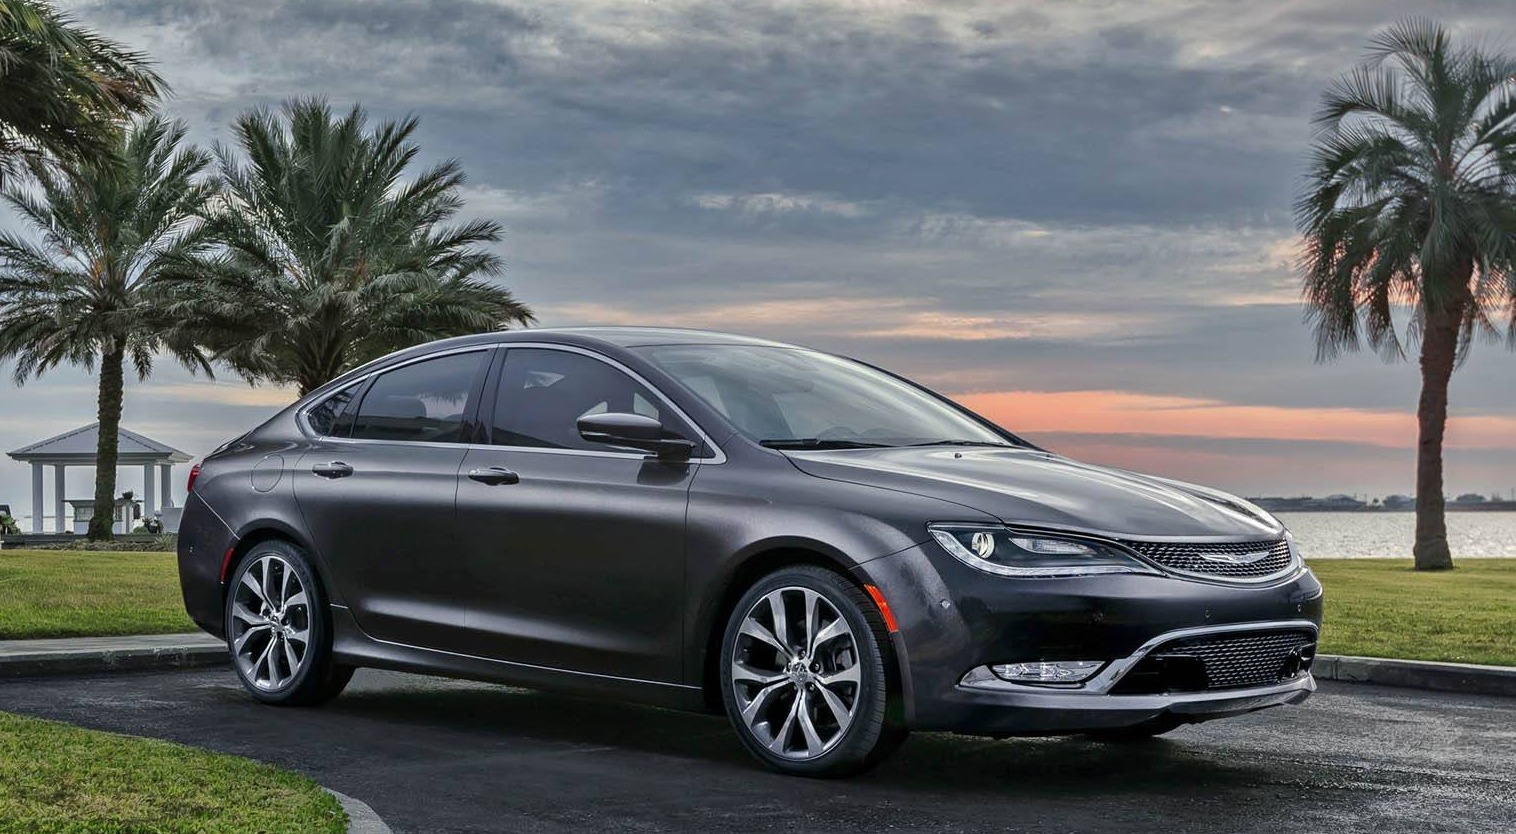 chrysler 200 2015 exterior. 2015 chrysler 200 awd exterior 0